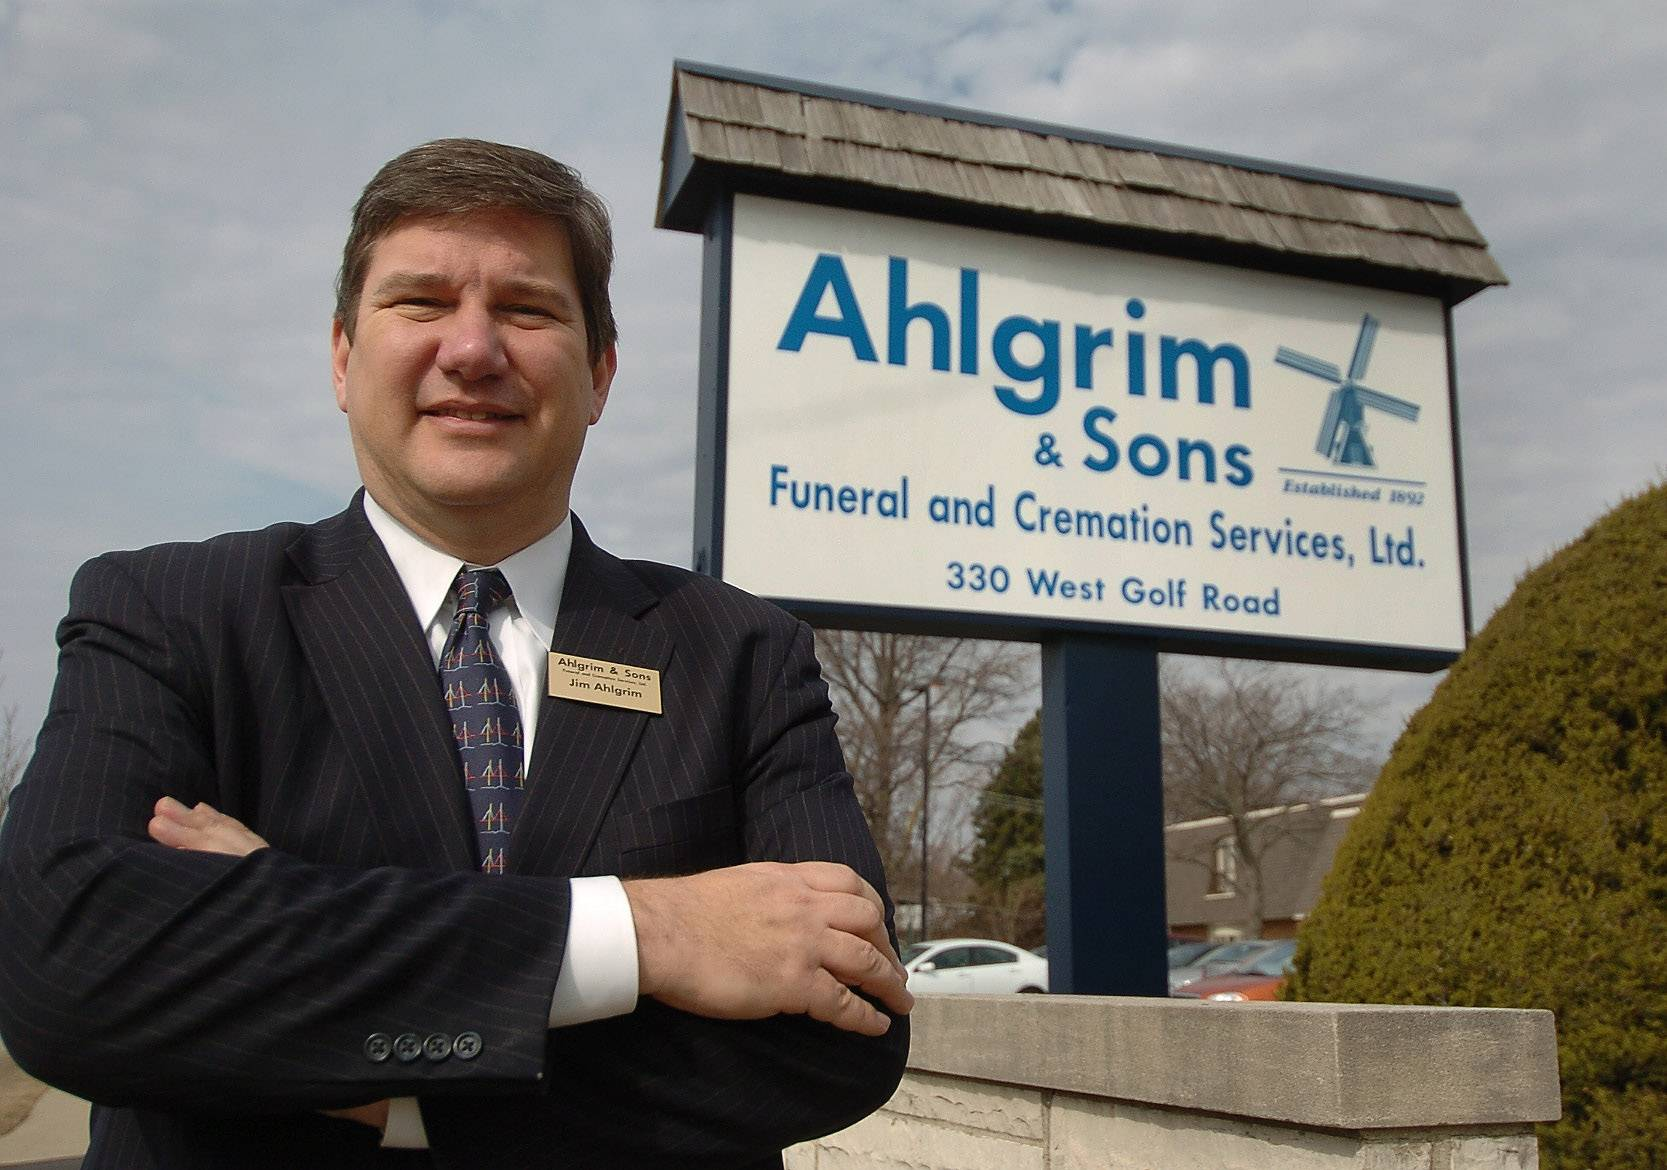 Schaumburg trustees Tuesday allowed on-site cremations at village funeral homes with a special-use permit in response to a request for a change in the zoning code from Jim Ahlgrim, co-owner of Ahlgrim & Sons Funeral and Cremation Services.